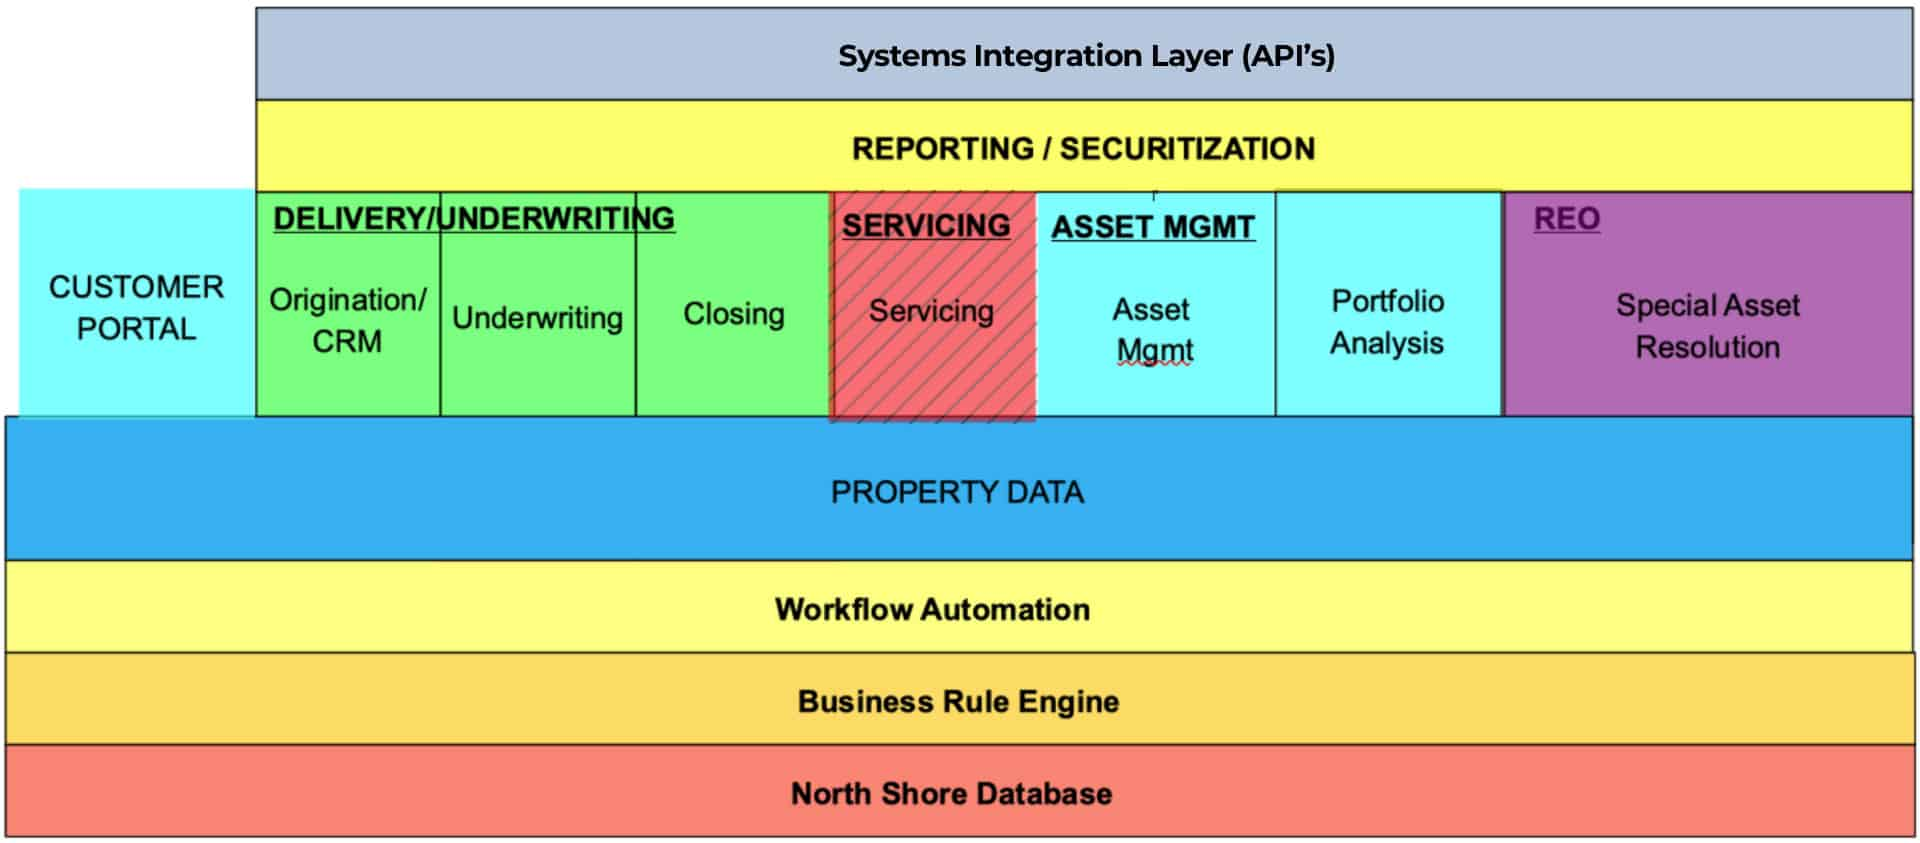 Systems Integration Layer (API's)